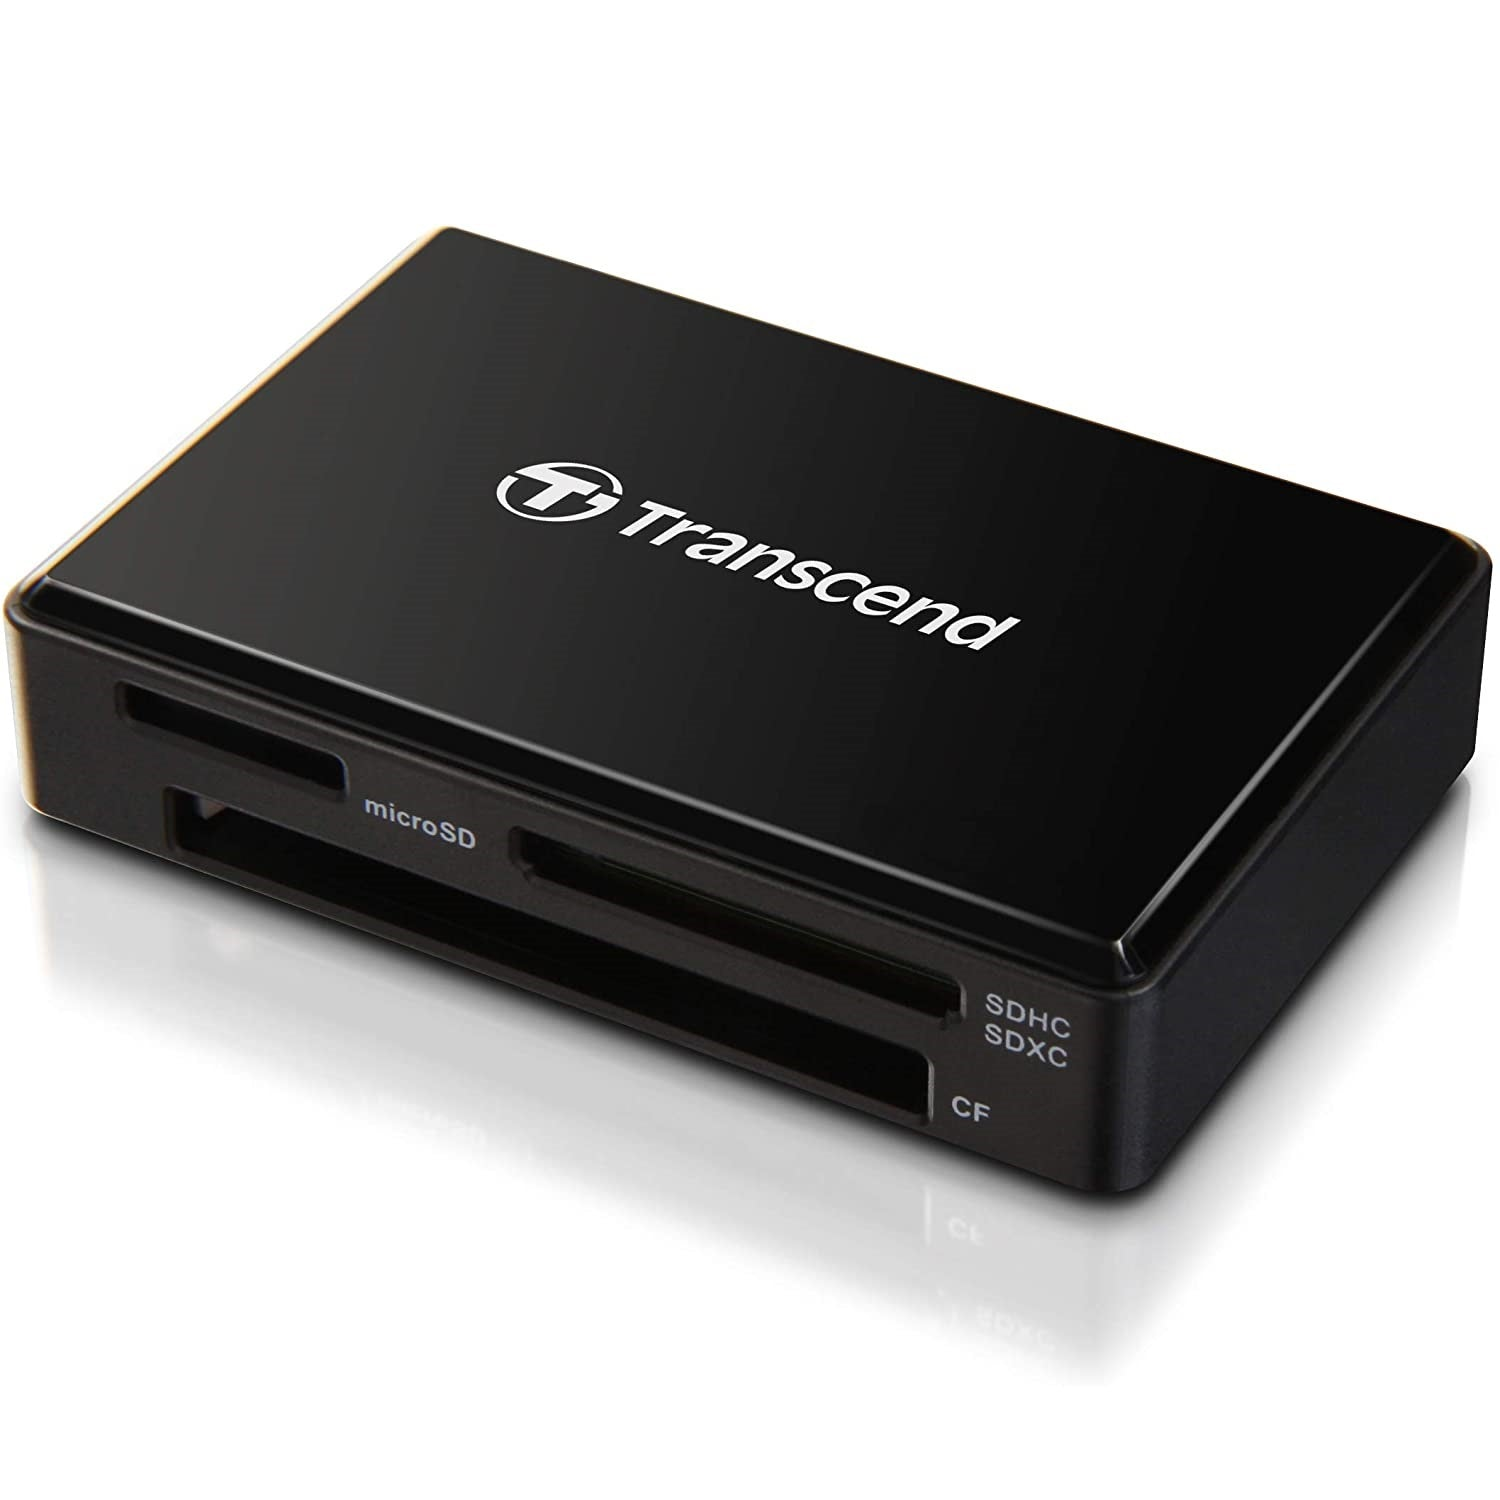 Transcend USB 3.0 Card Reader for SD/SDHC/SDXC/MS/CF (RDF8K)